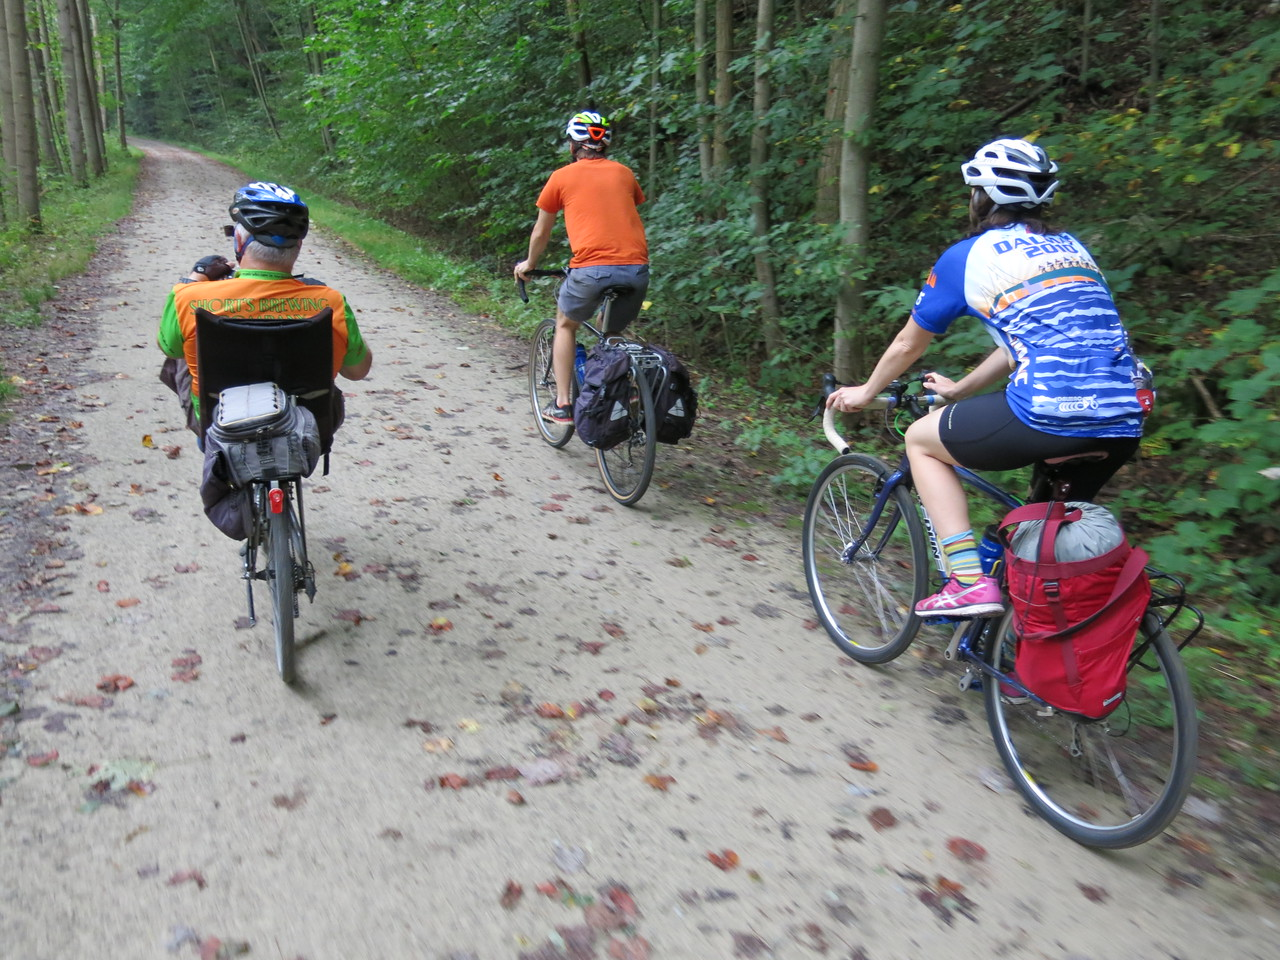 Riding the GAP along the Yough River at about MP 70.5